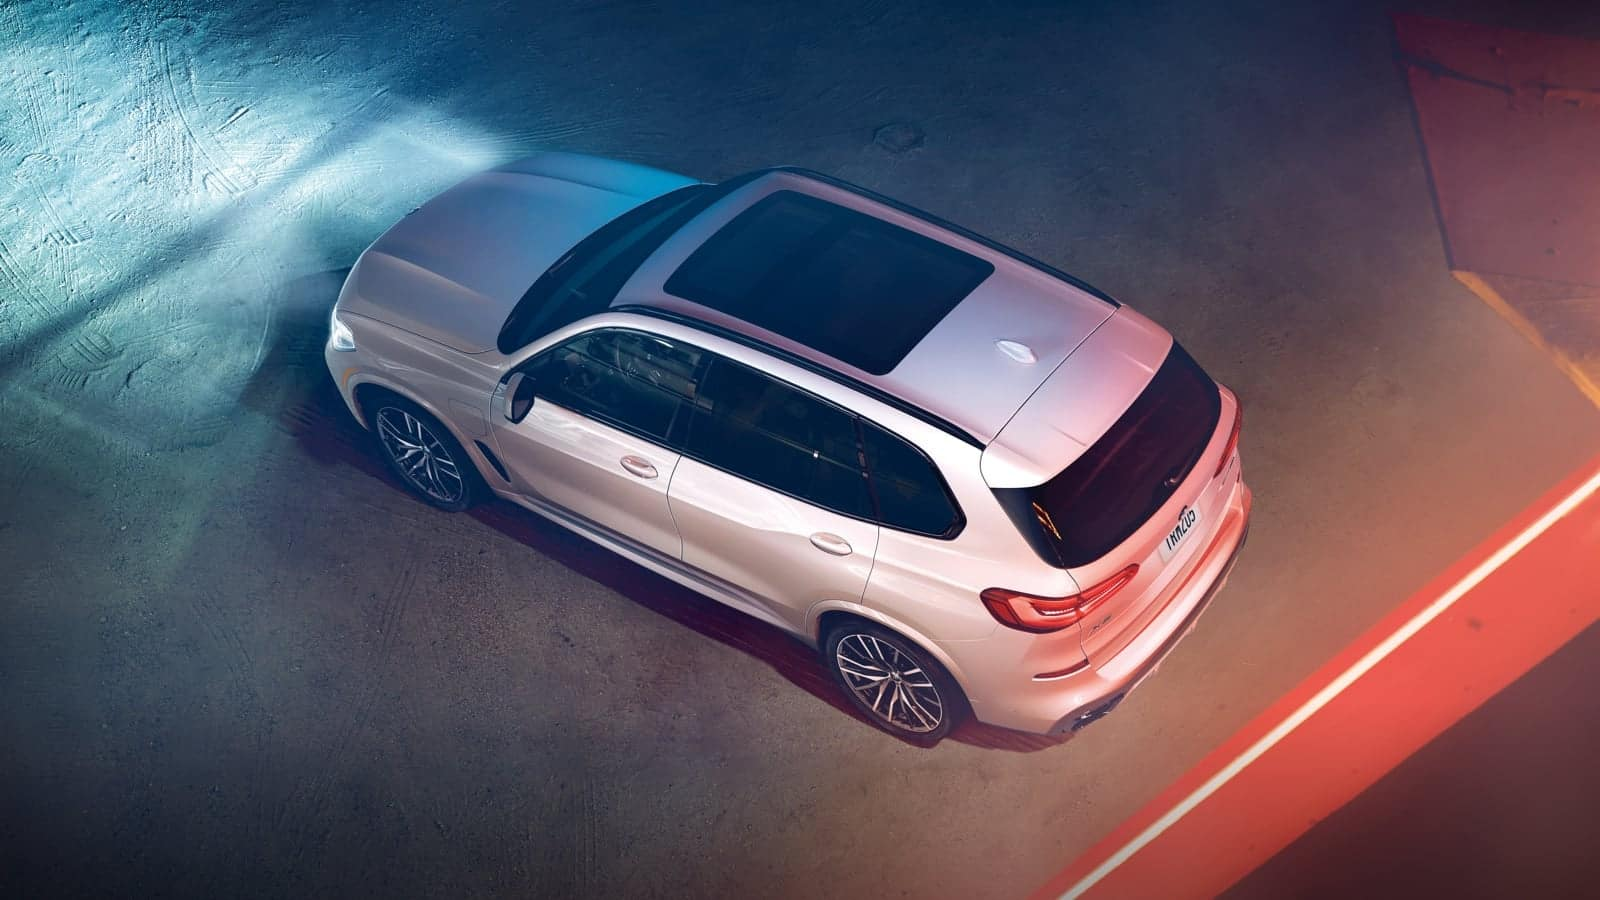 Bird's eye view of the New BMW X5